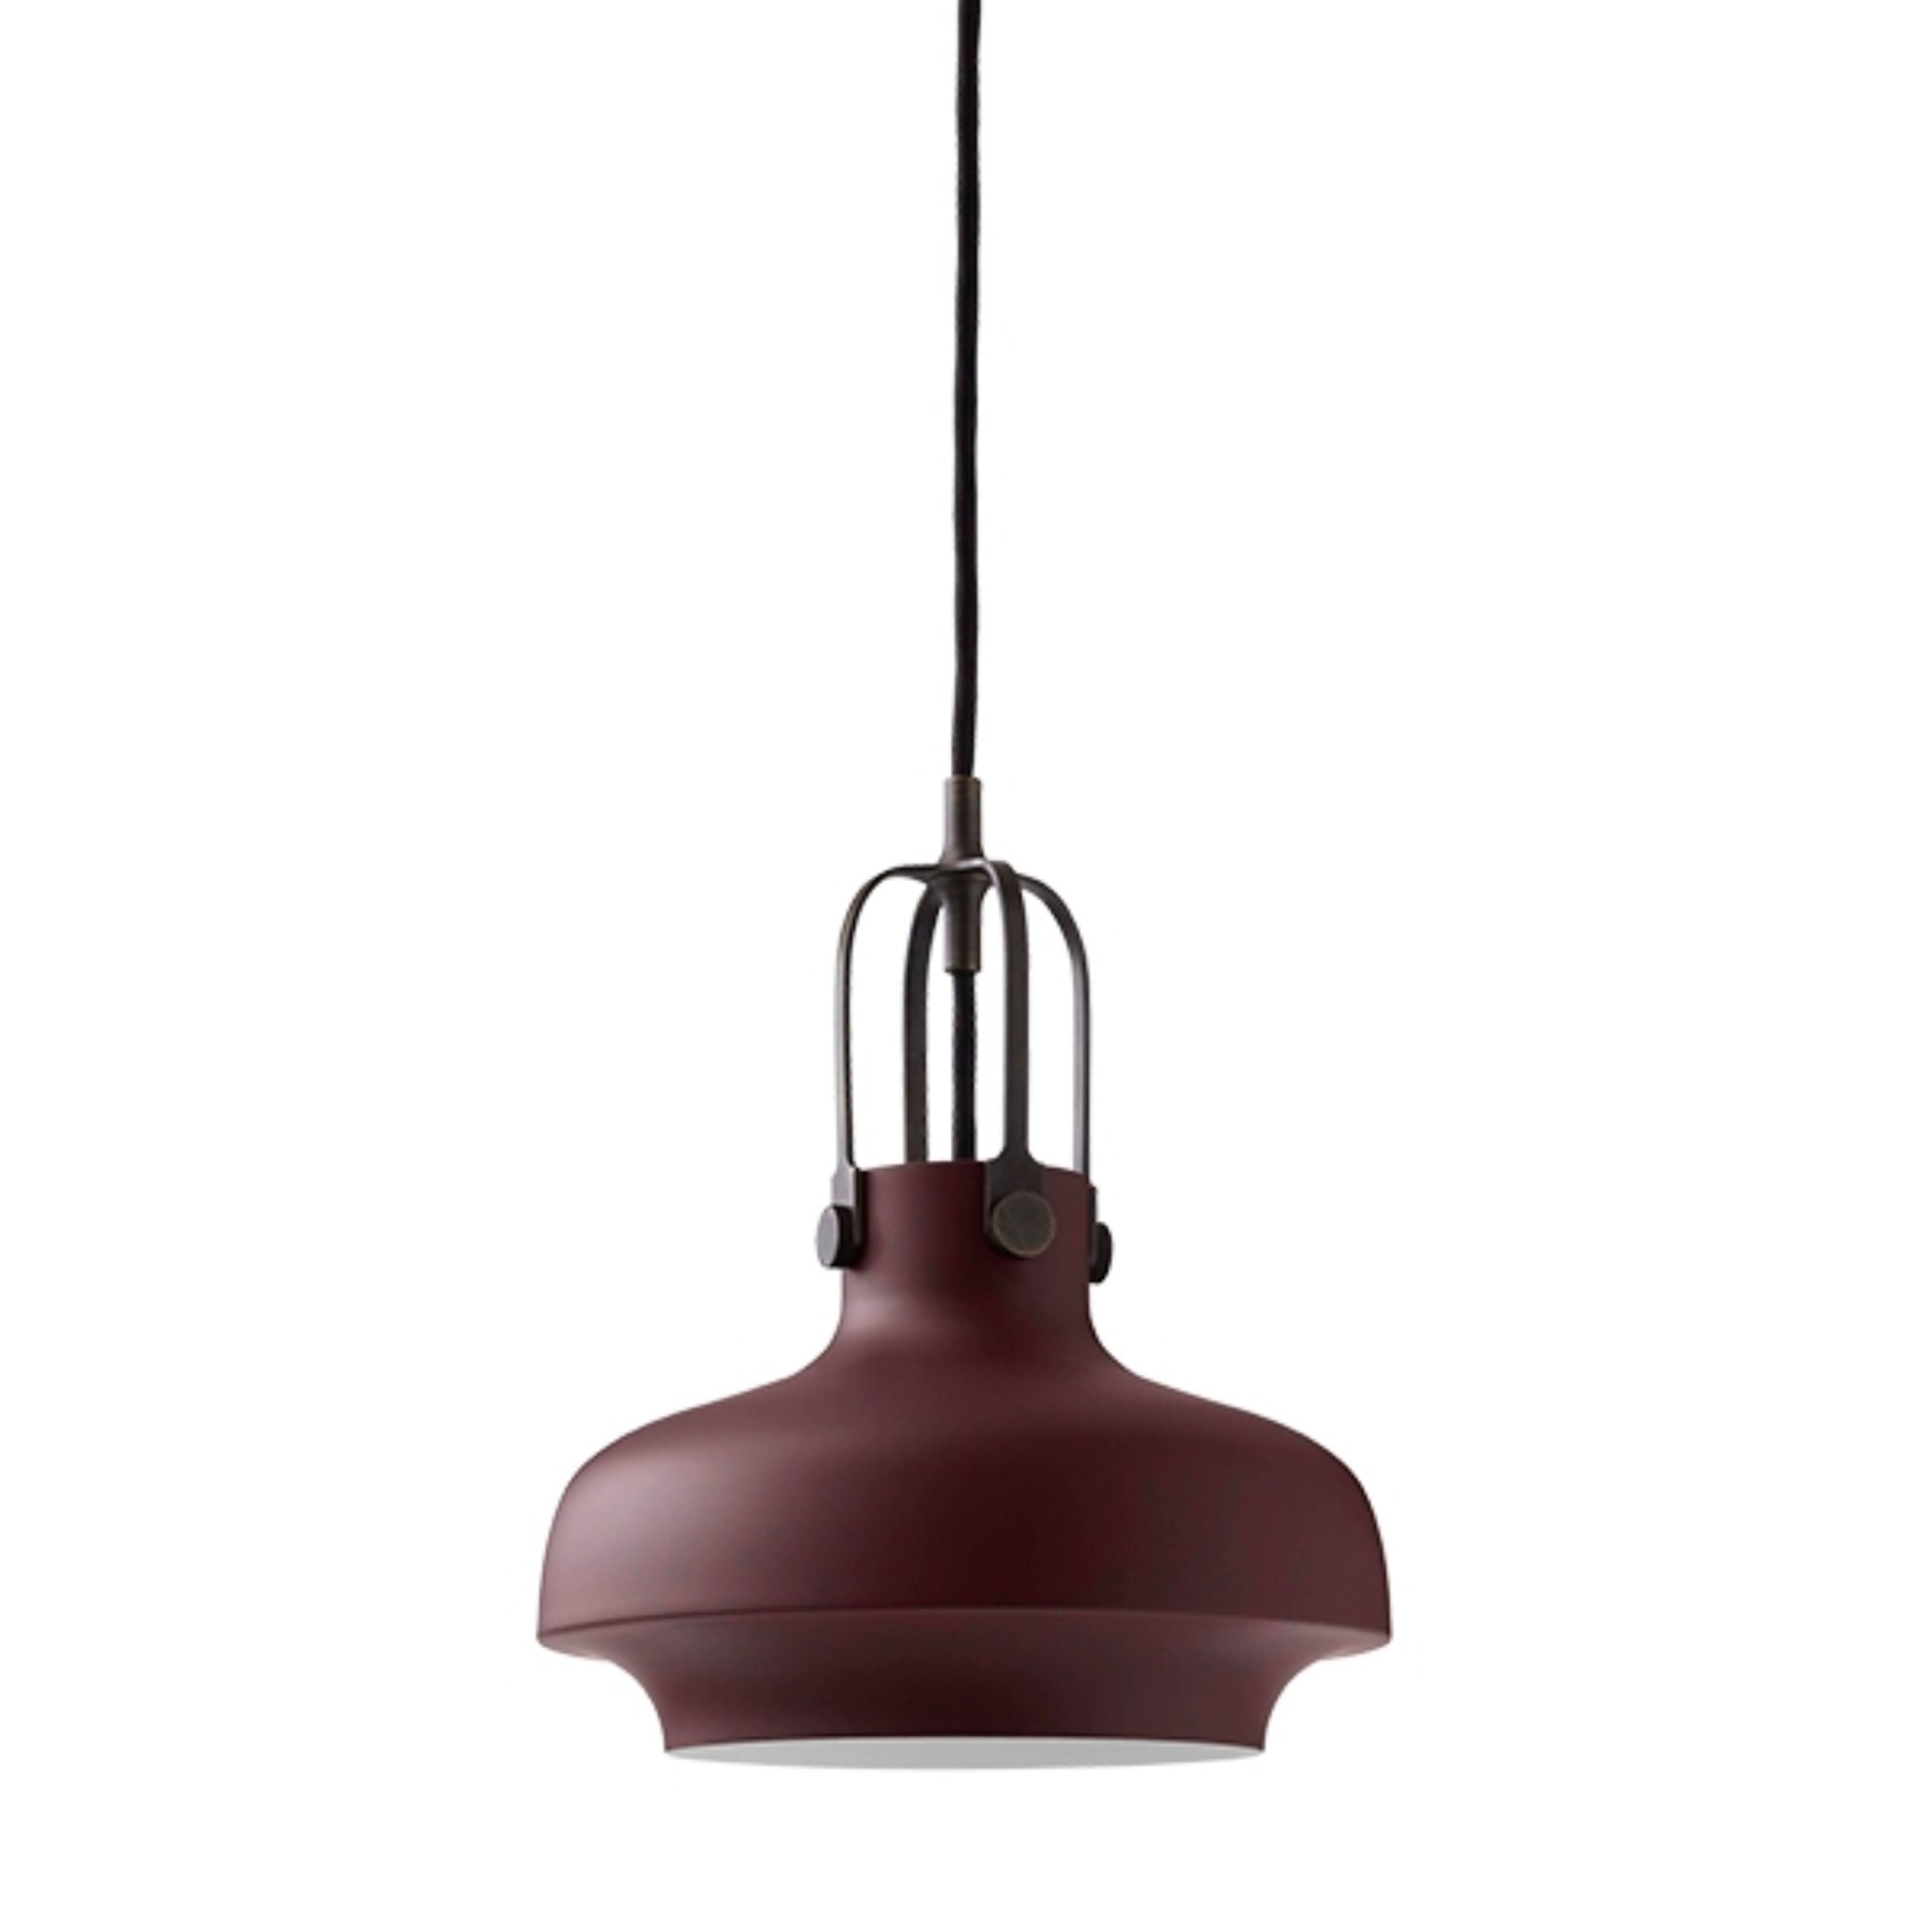 &Tradition SC6 Copenhagen pendant light, matt plum - bronzed brass suspension